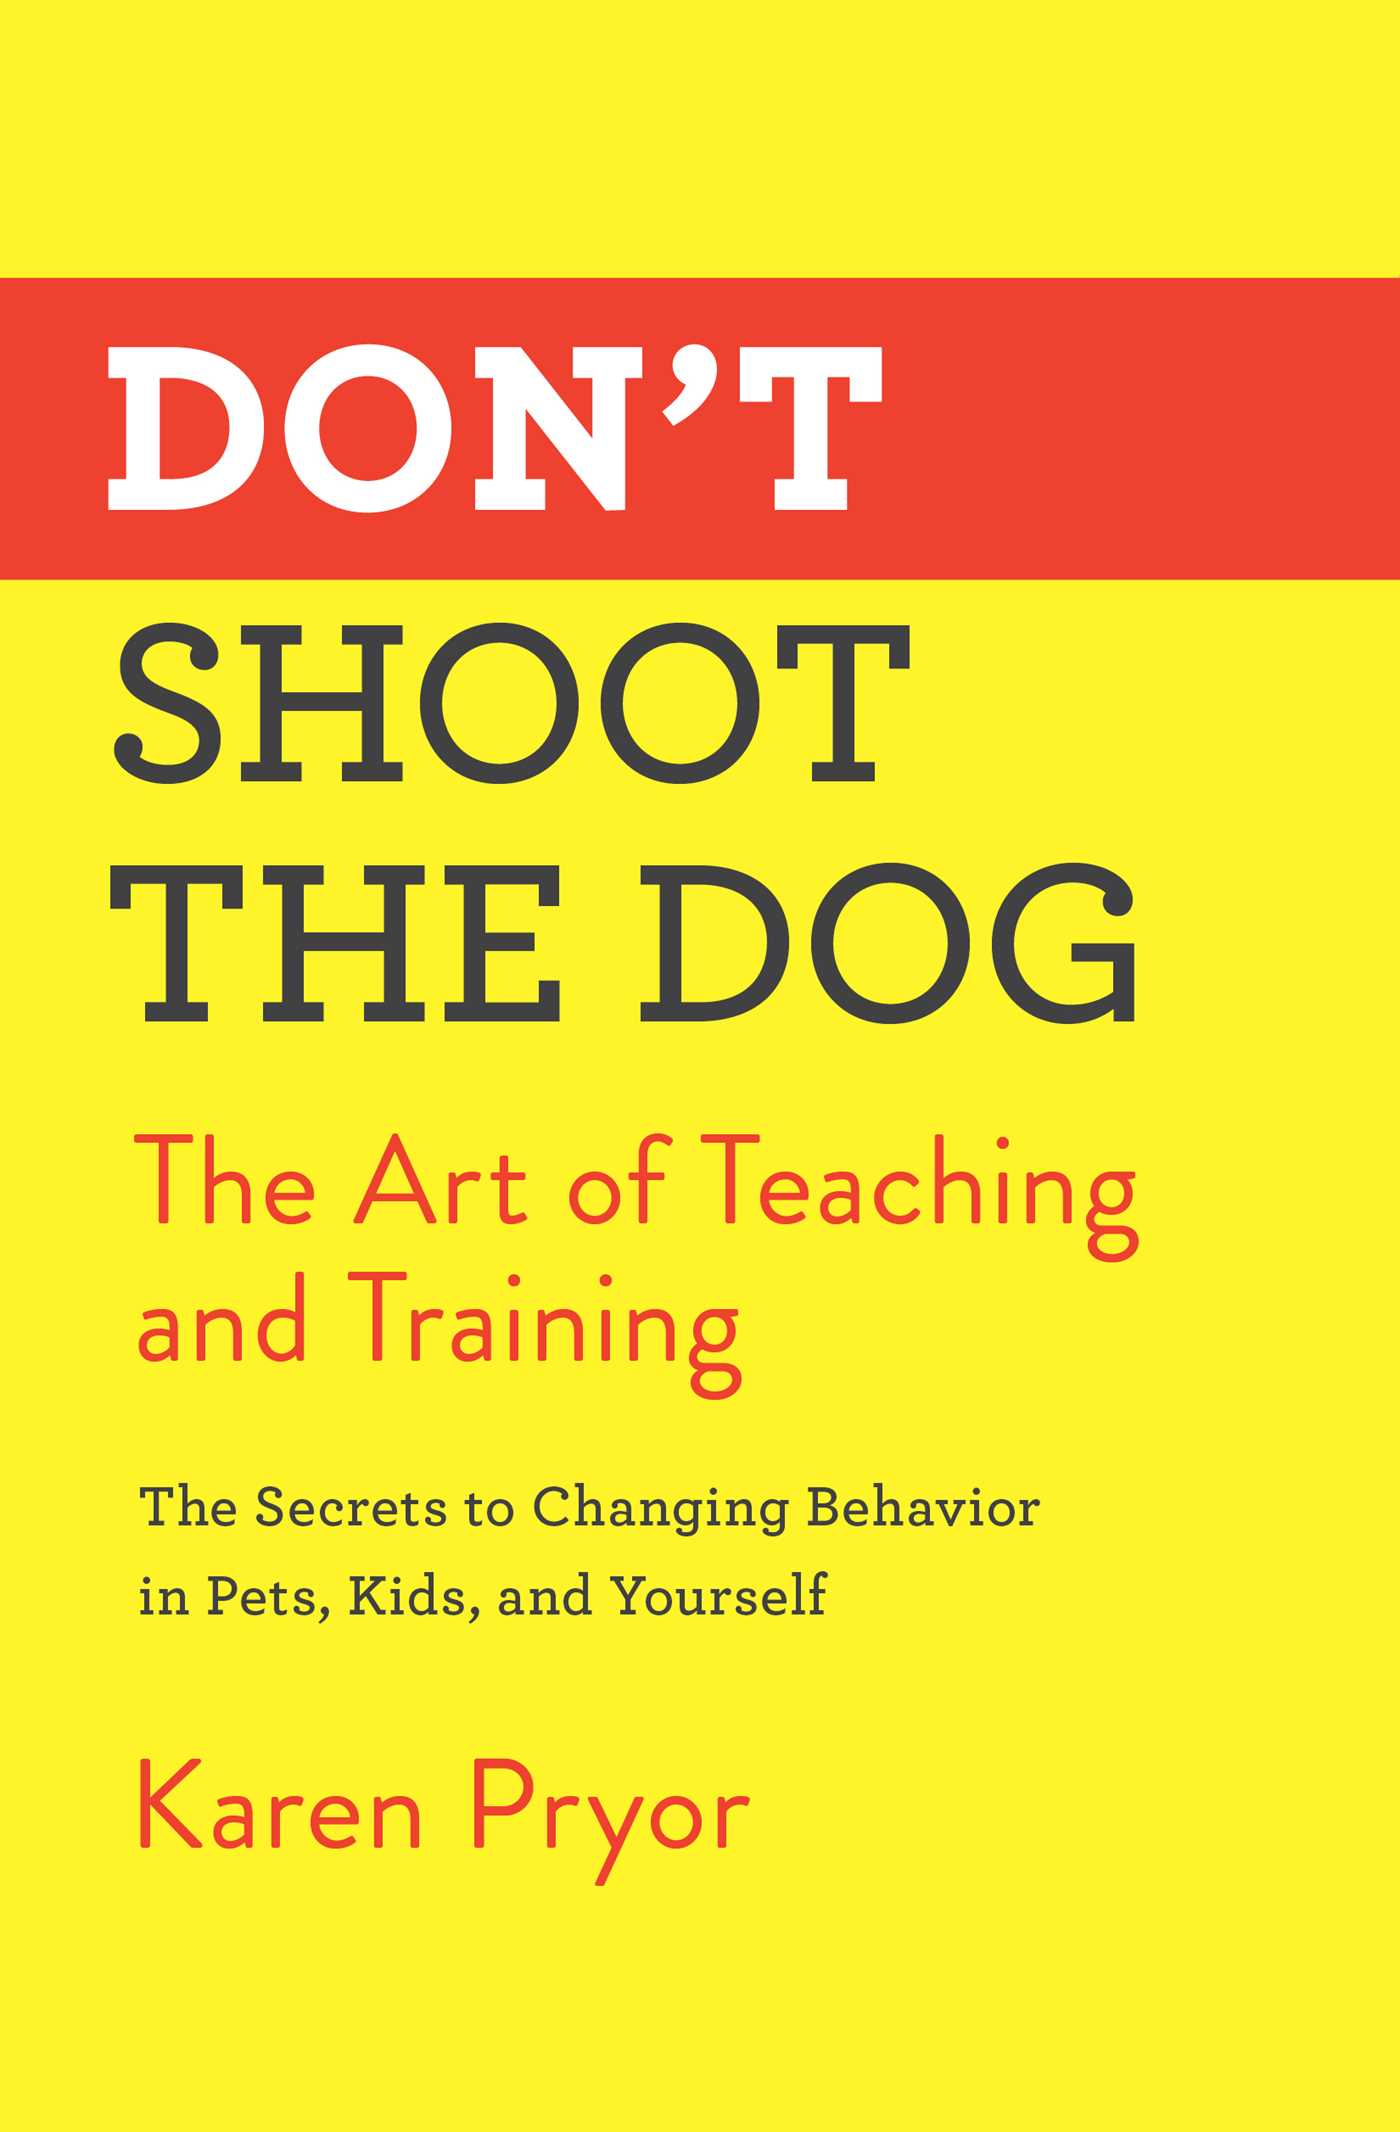 Don't Shoot the Dog | Book by Karen Pryor | Official